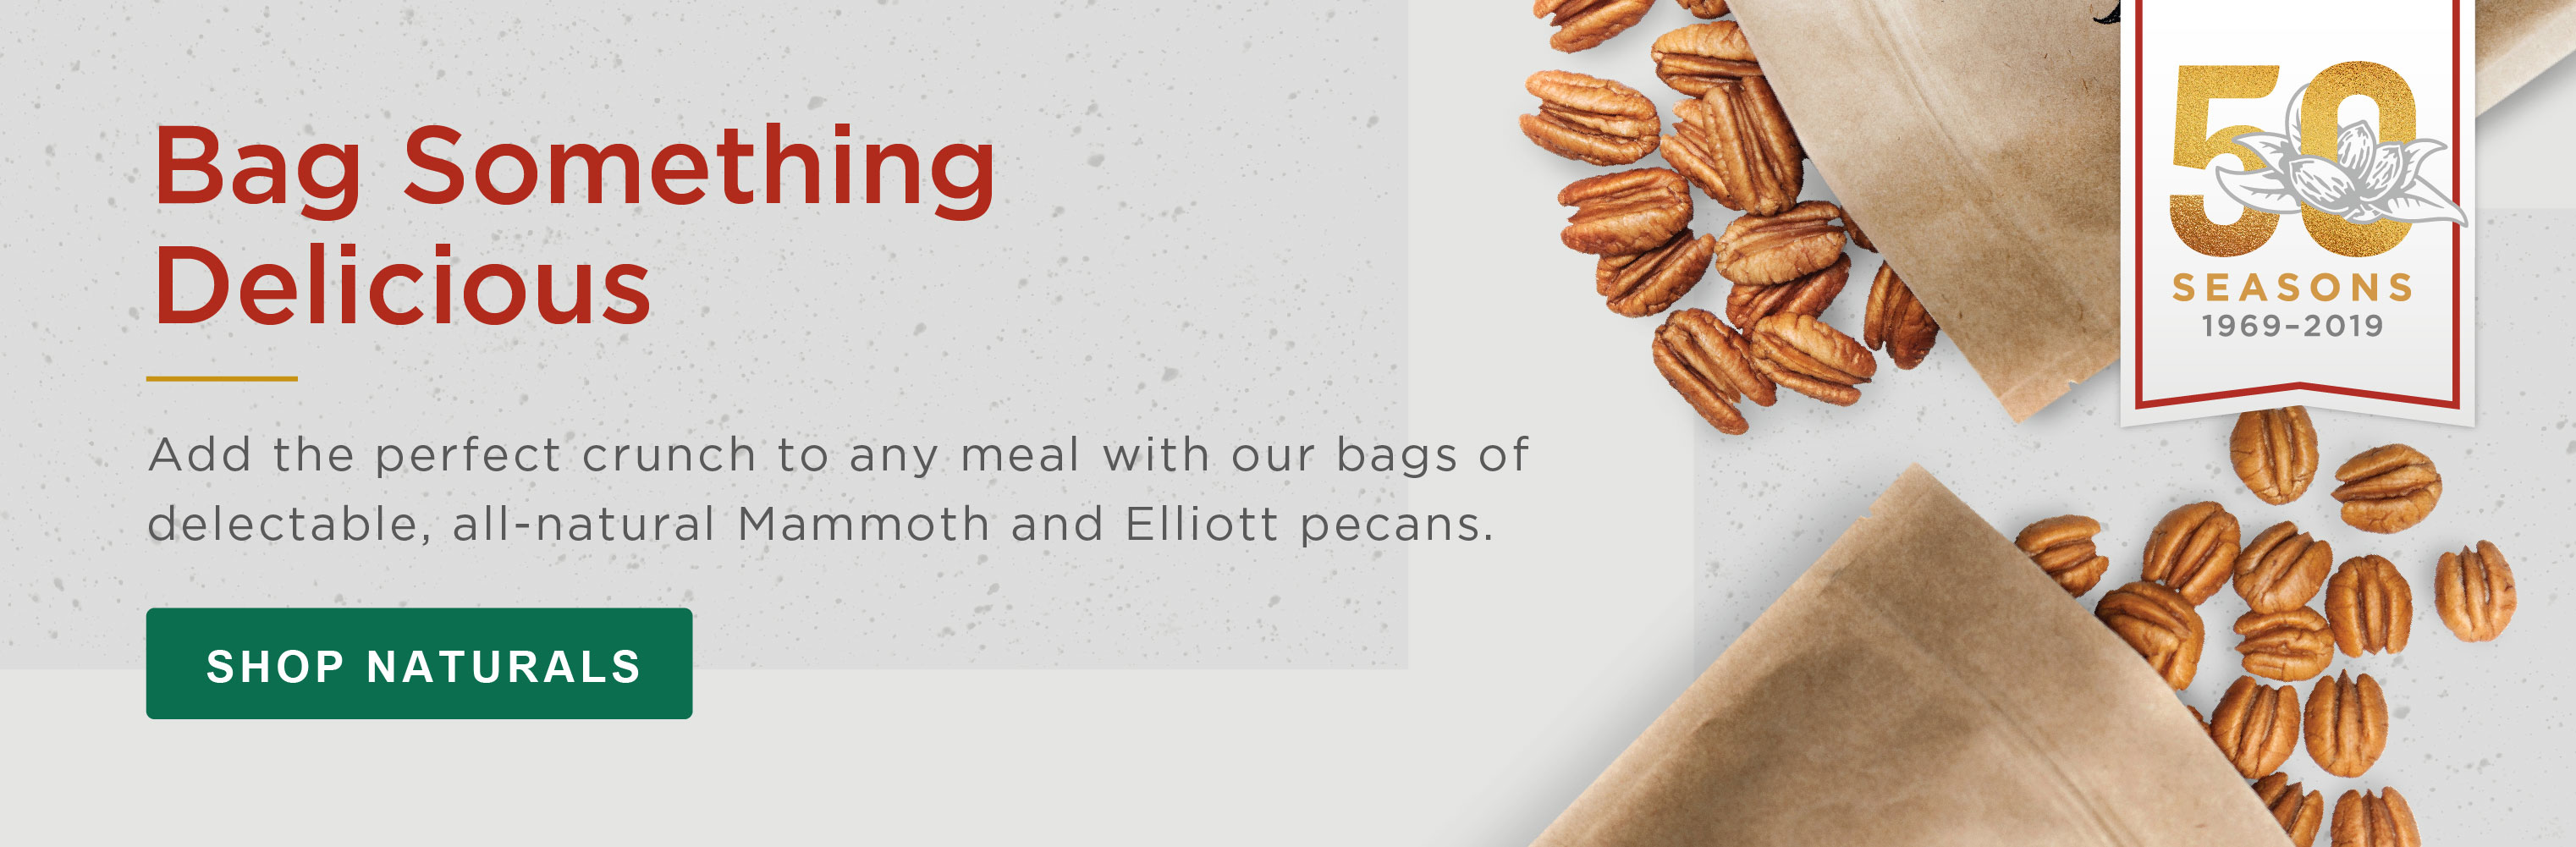 Bag Something Delicious. Add the perfect crunch to any meal with our bags of delectable, all-natural Mammoth and Elliott pecans. SHOP NATURALS »